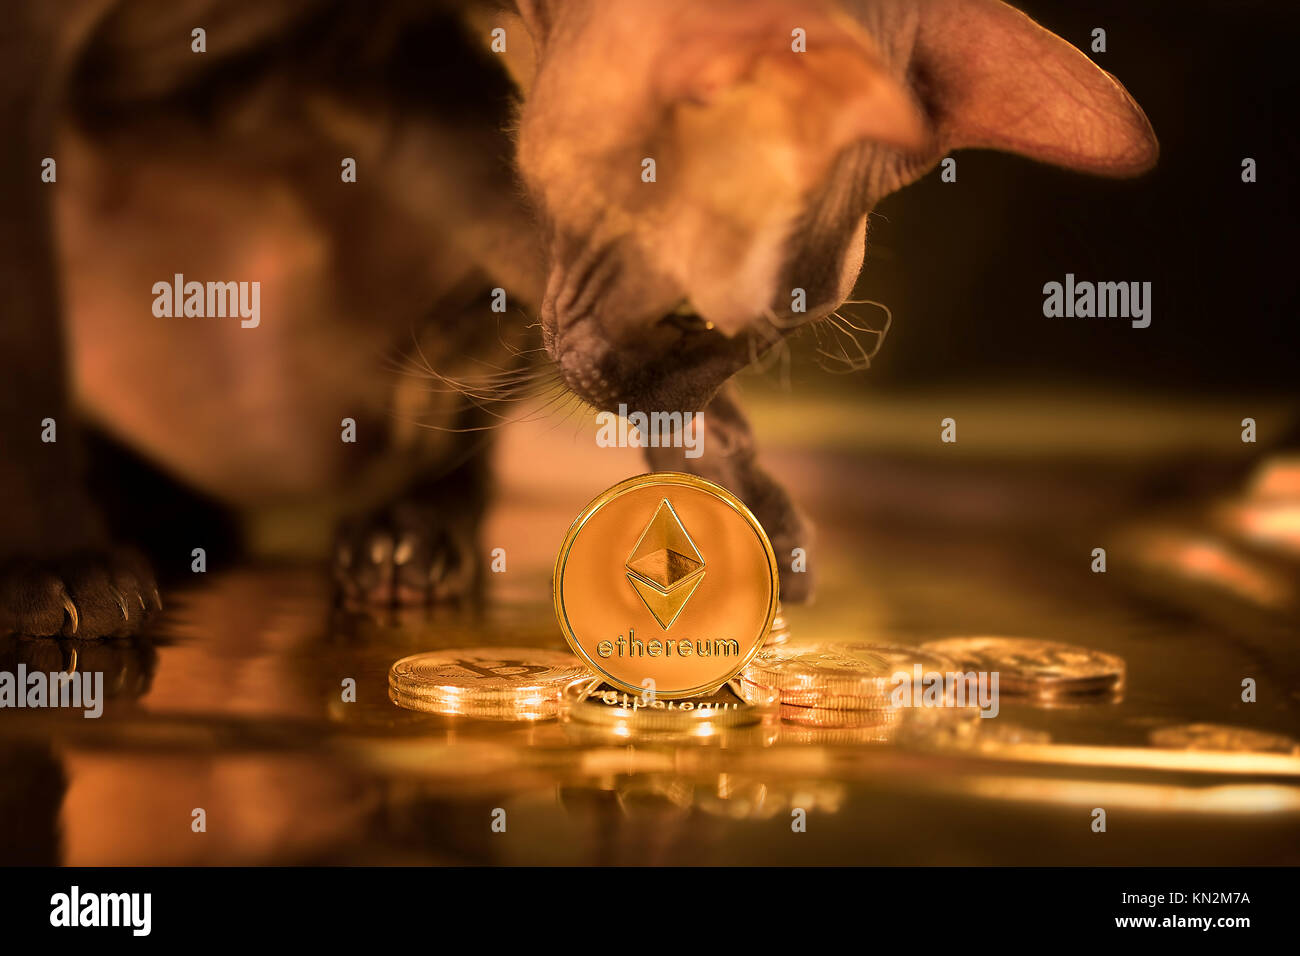 The cat of the Sphynx breed plays with the coin of the Ethereum cryptocurrency - Stock Image